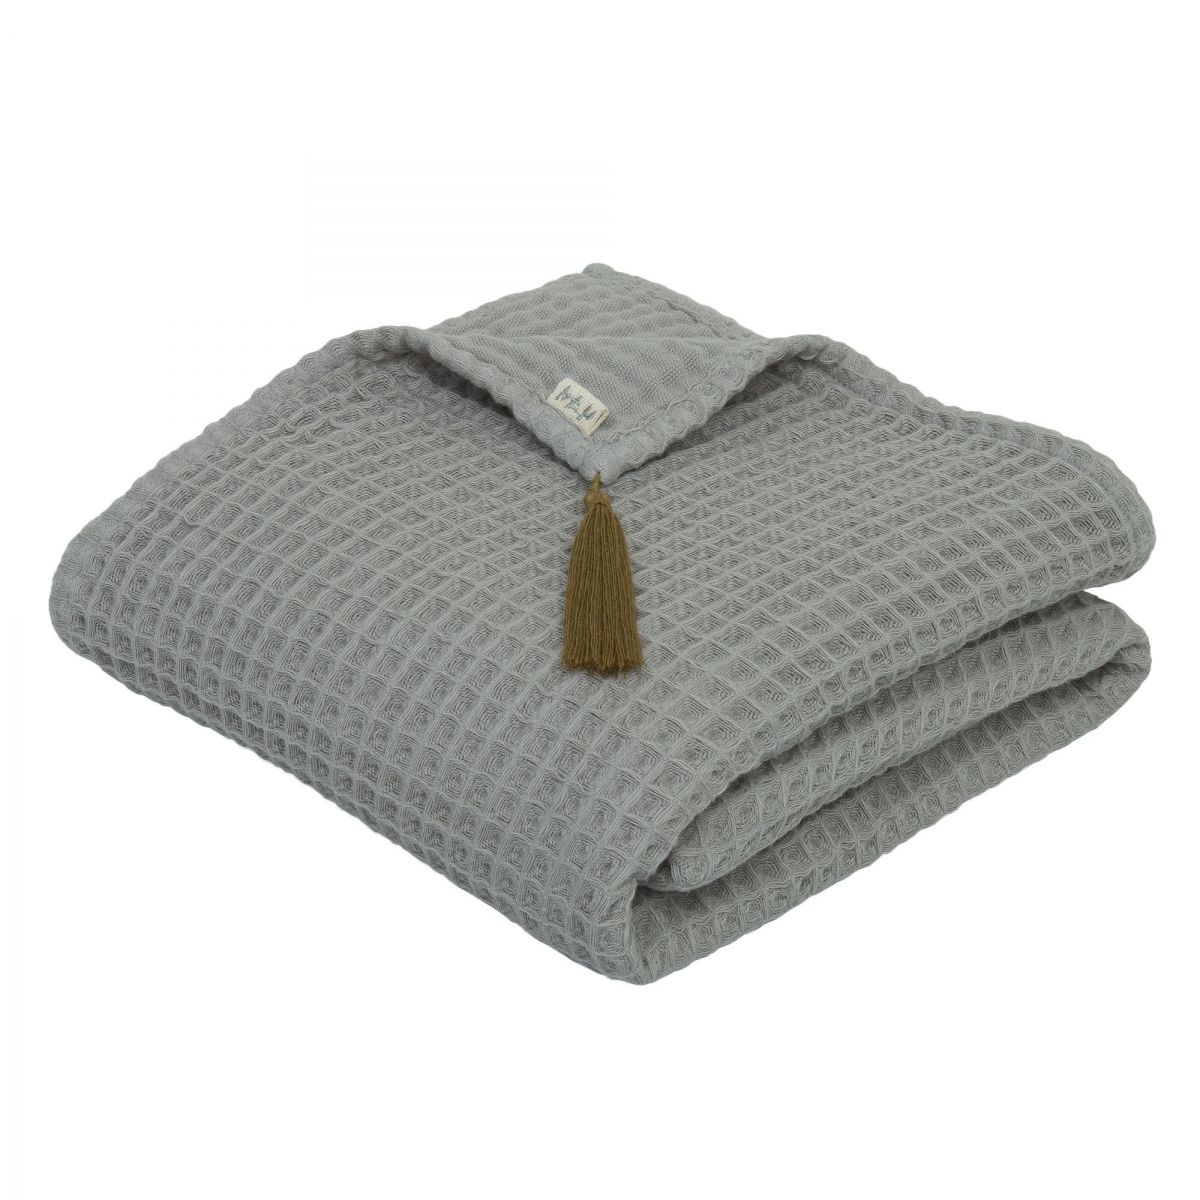 Numero 74 - Bath Towel silver grey - 1